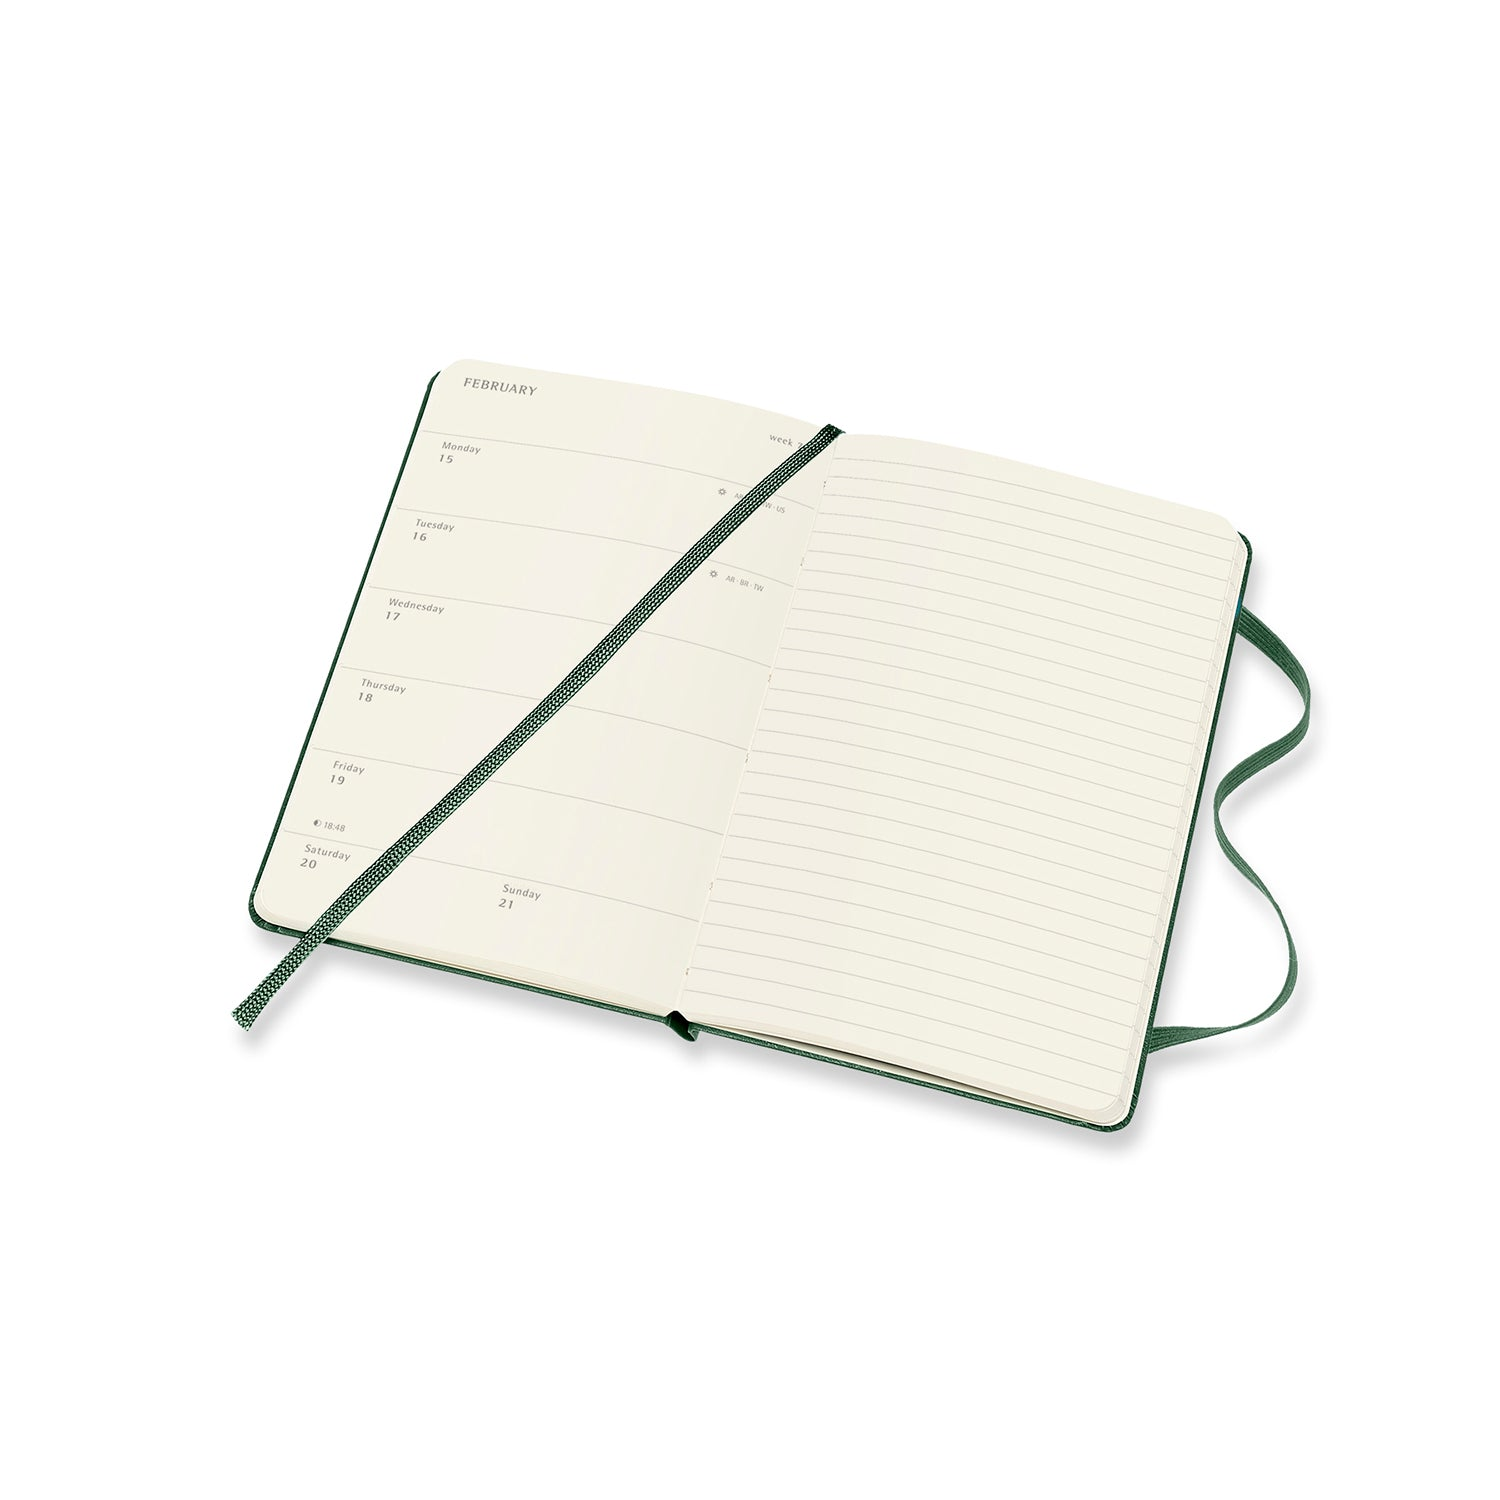 2021 Moleskine Large Weekly Notebook Diary/Planner Hardcover Myrtle Green